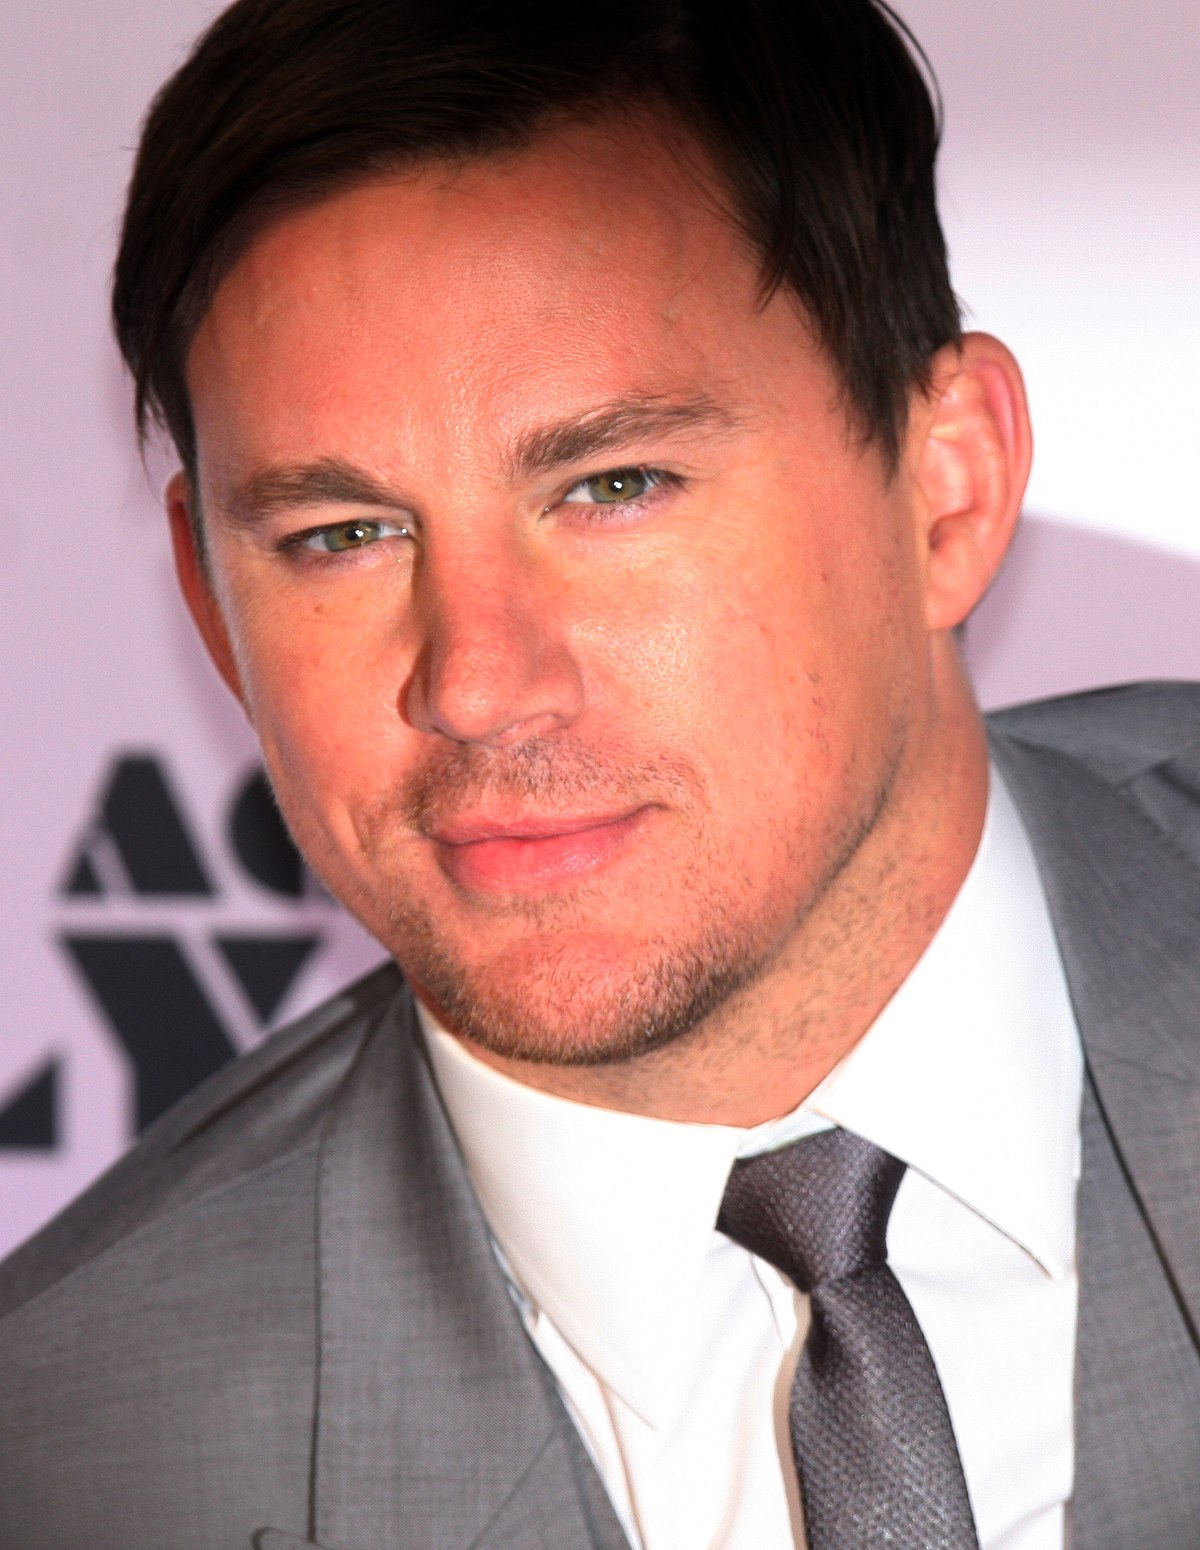 Channing Tatum - Wikipedia Channing Tatum